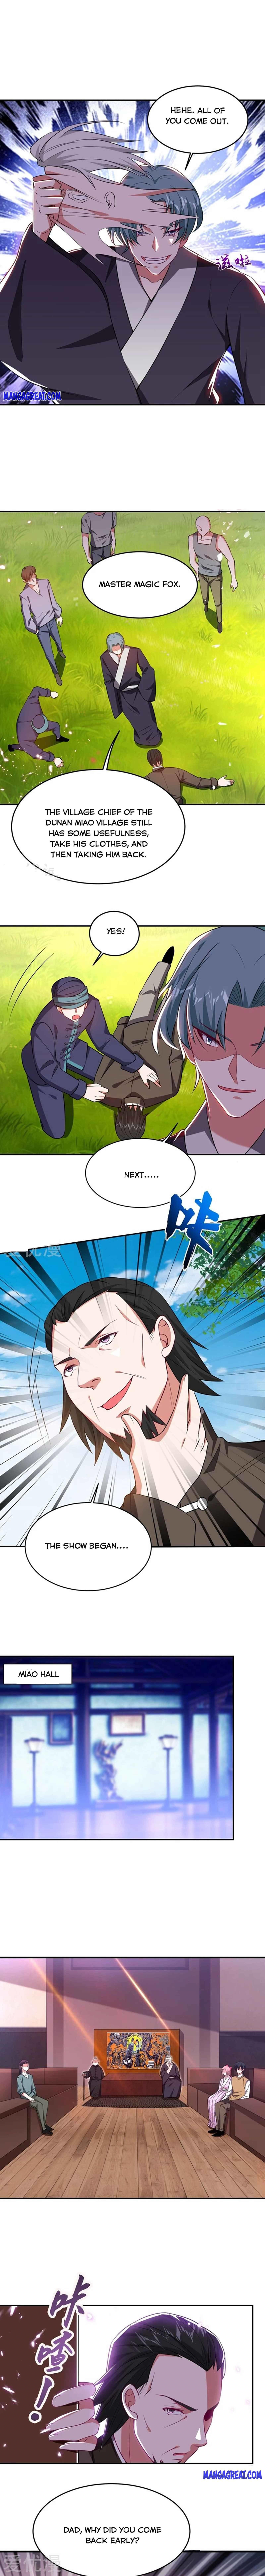 Picking Up A Shool Beauty To Be Wife Chapter 164 page 4 - Mangakakalots.com